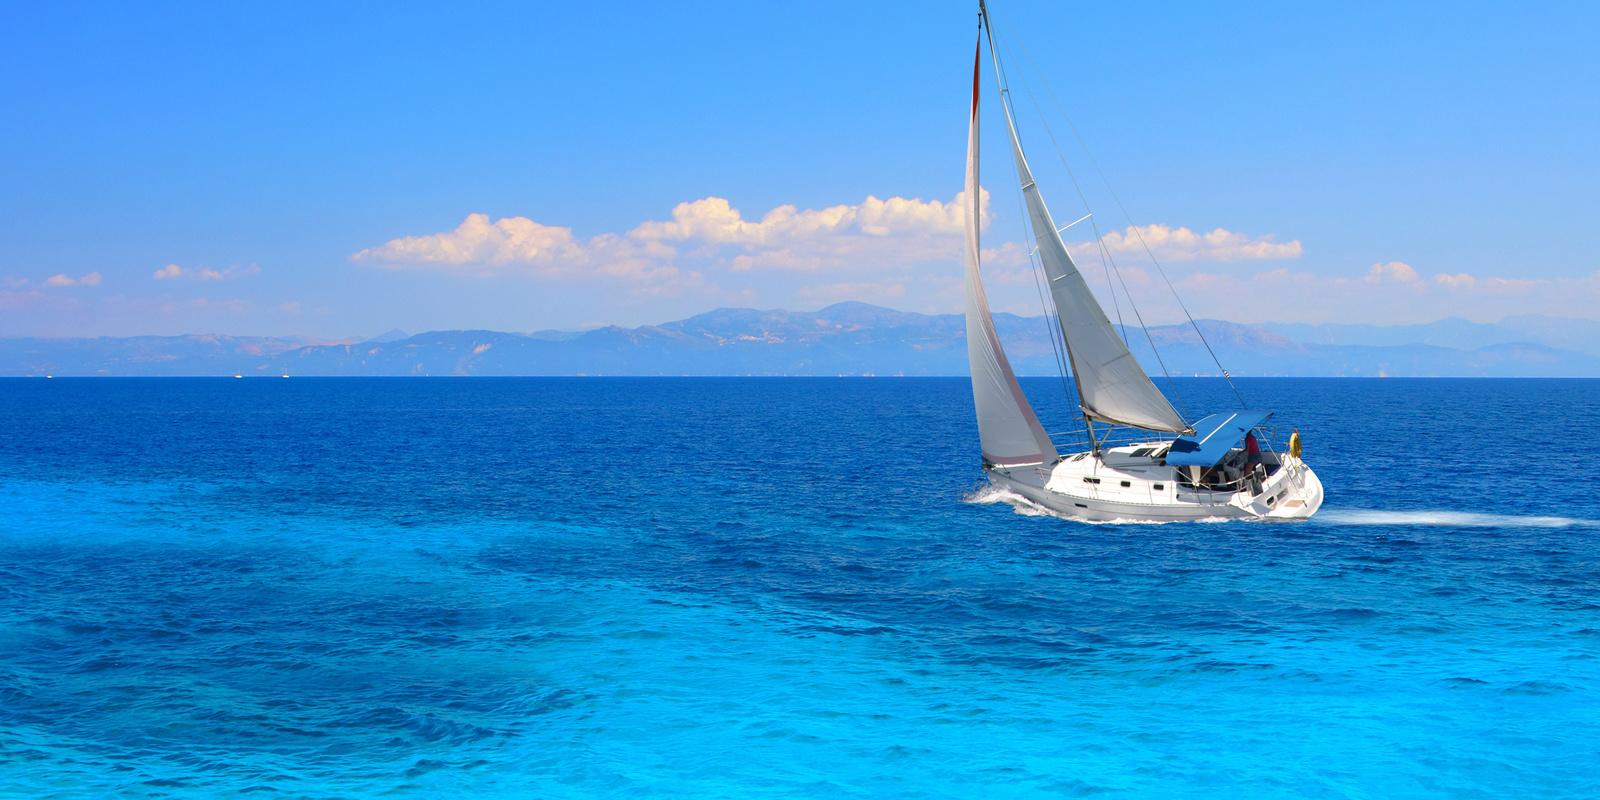 Two weeks of Sailing around theCaribbean Islands, from Grenada to Martinica